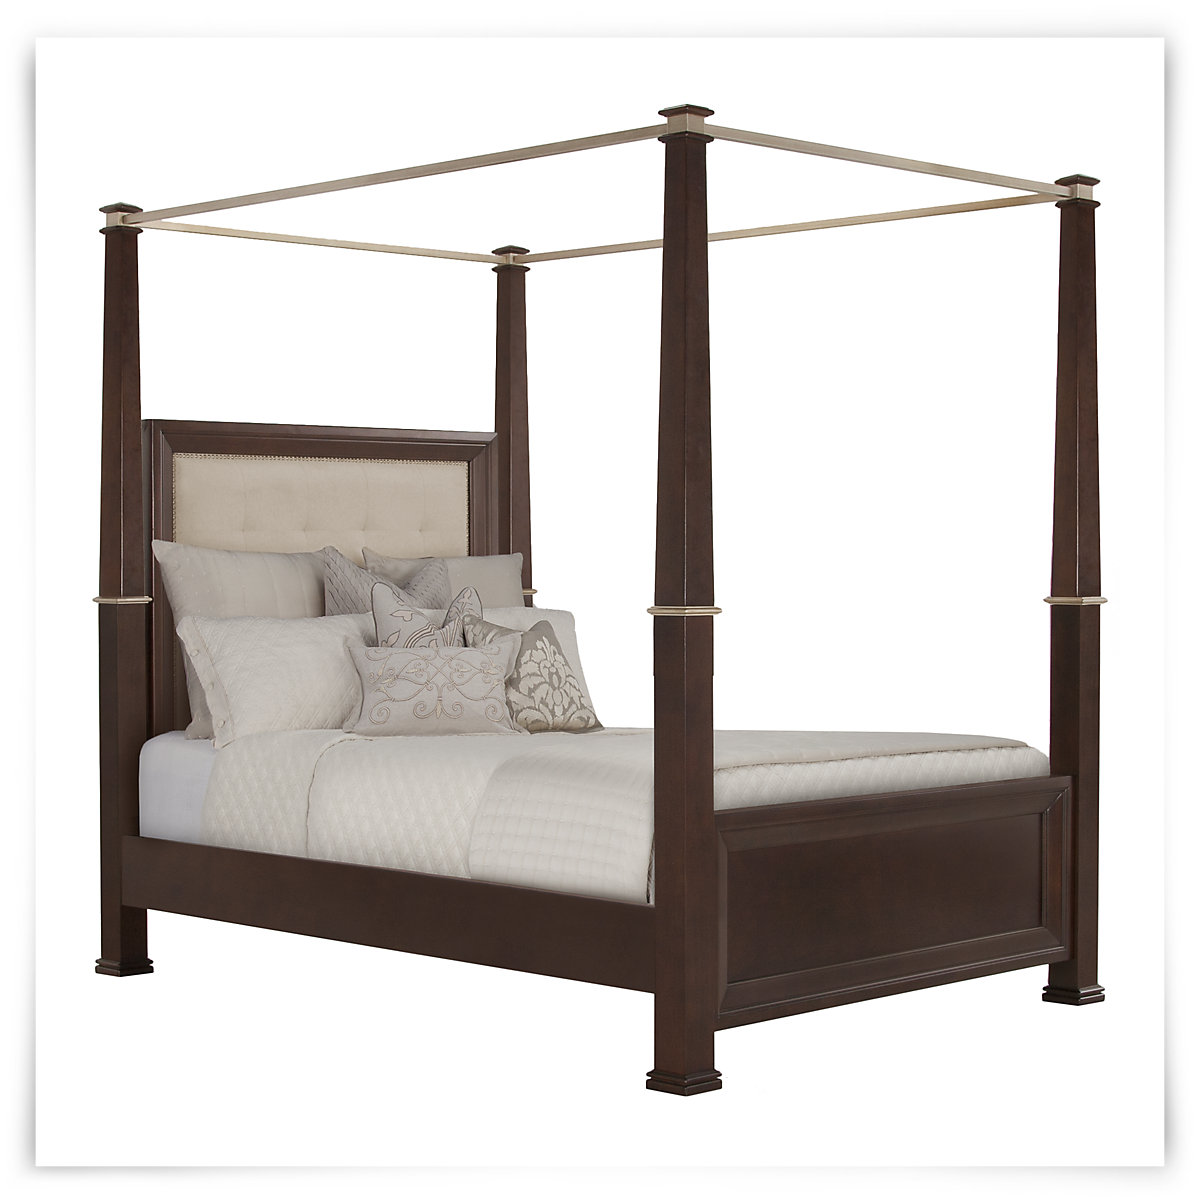 City Furniture Canyon Mid Tone Upholstered Canopy Bed